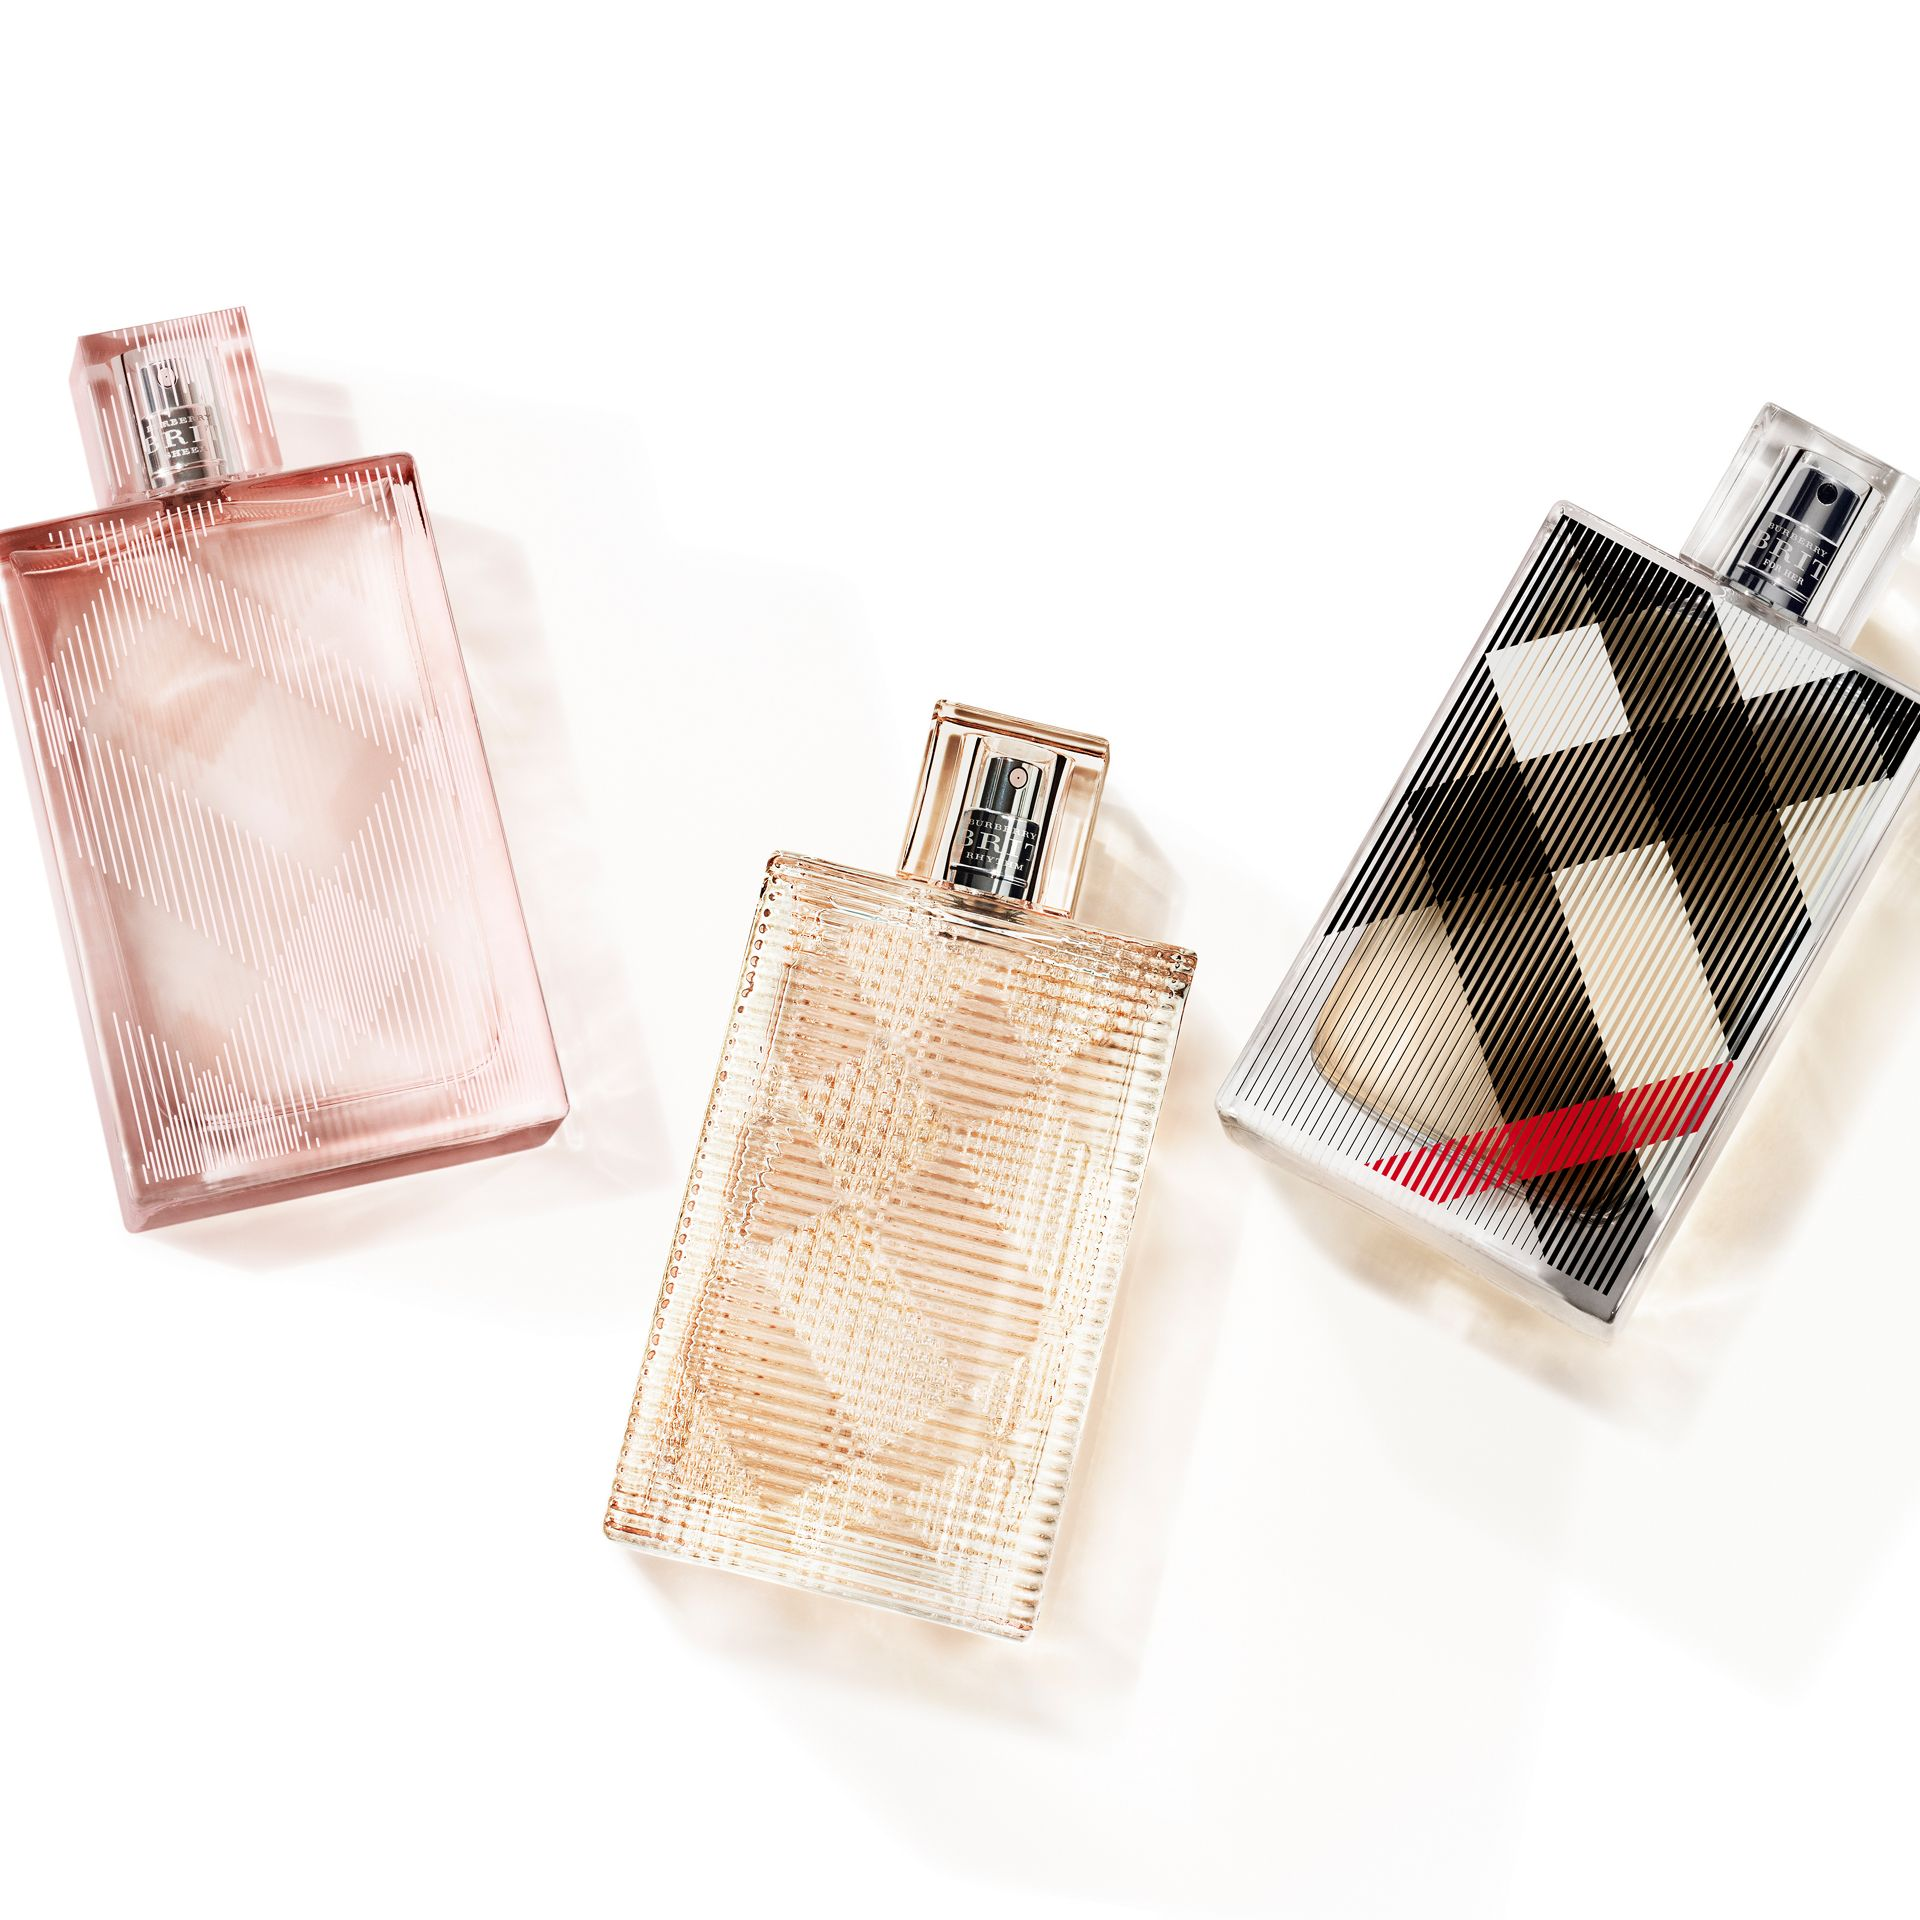 Burberry Brit Rhythm 花香淡香水 90ml - 女款 | Burberry - 圖庫照片 3